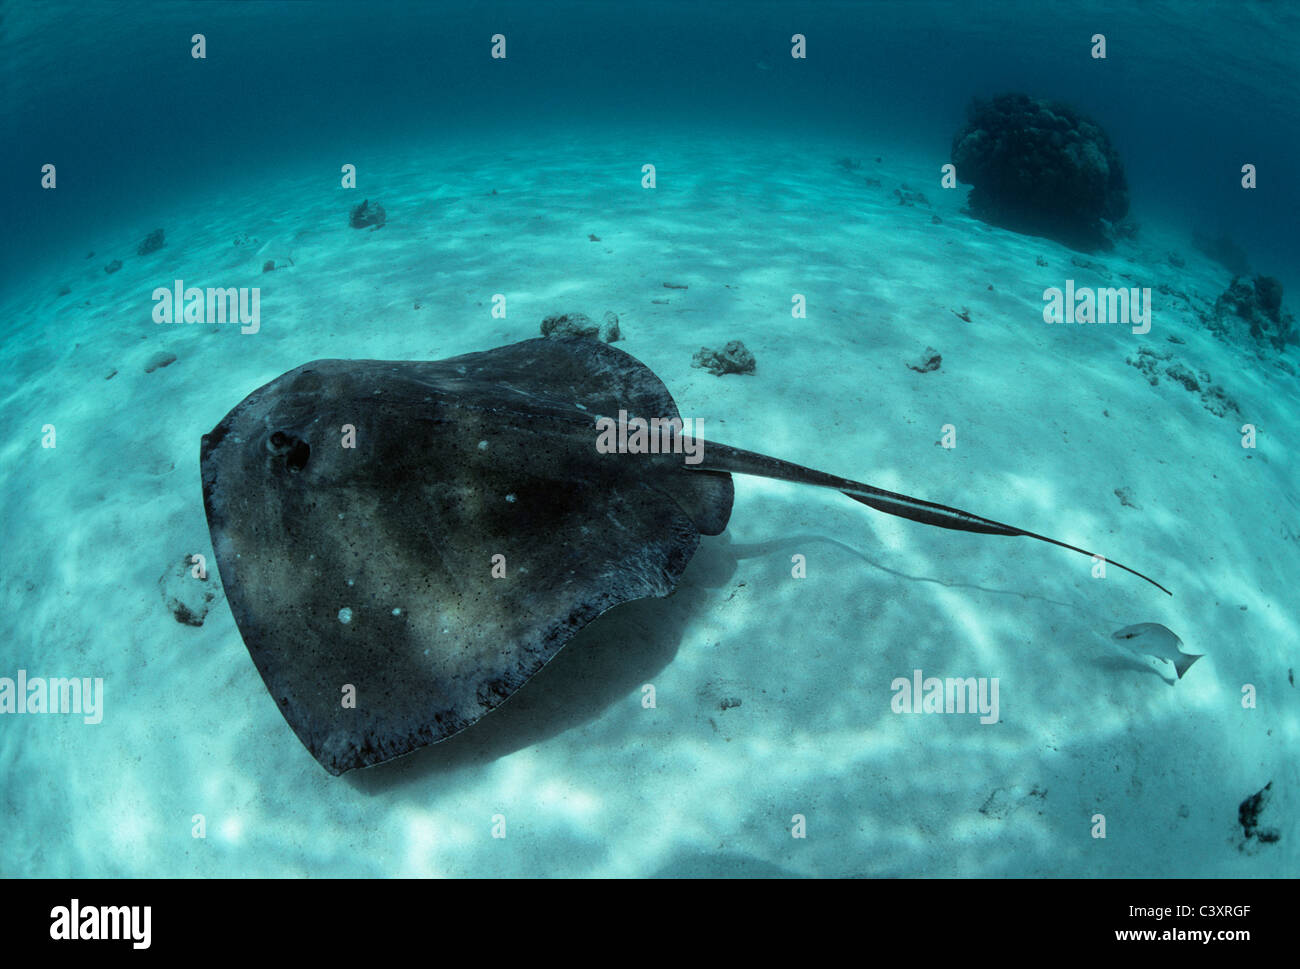 Southern Stingray (Dasyatis americana) swimming on sandy bottom. Stingray City, Grand Cayman Island, Caribbean Sea - Stock Image